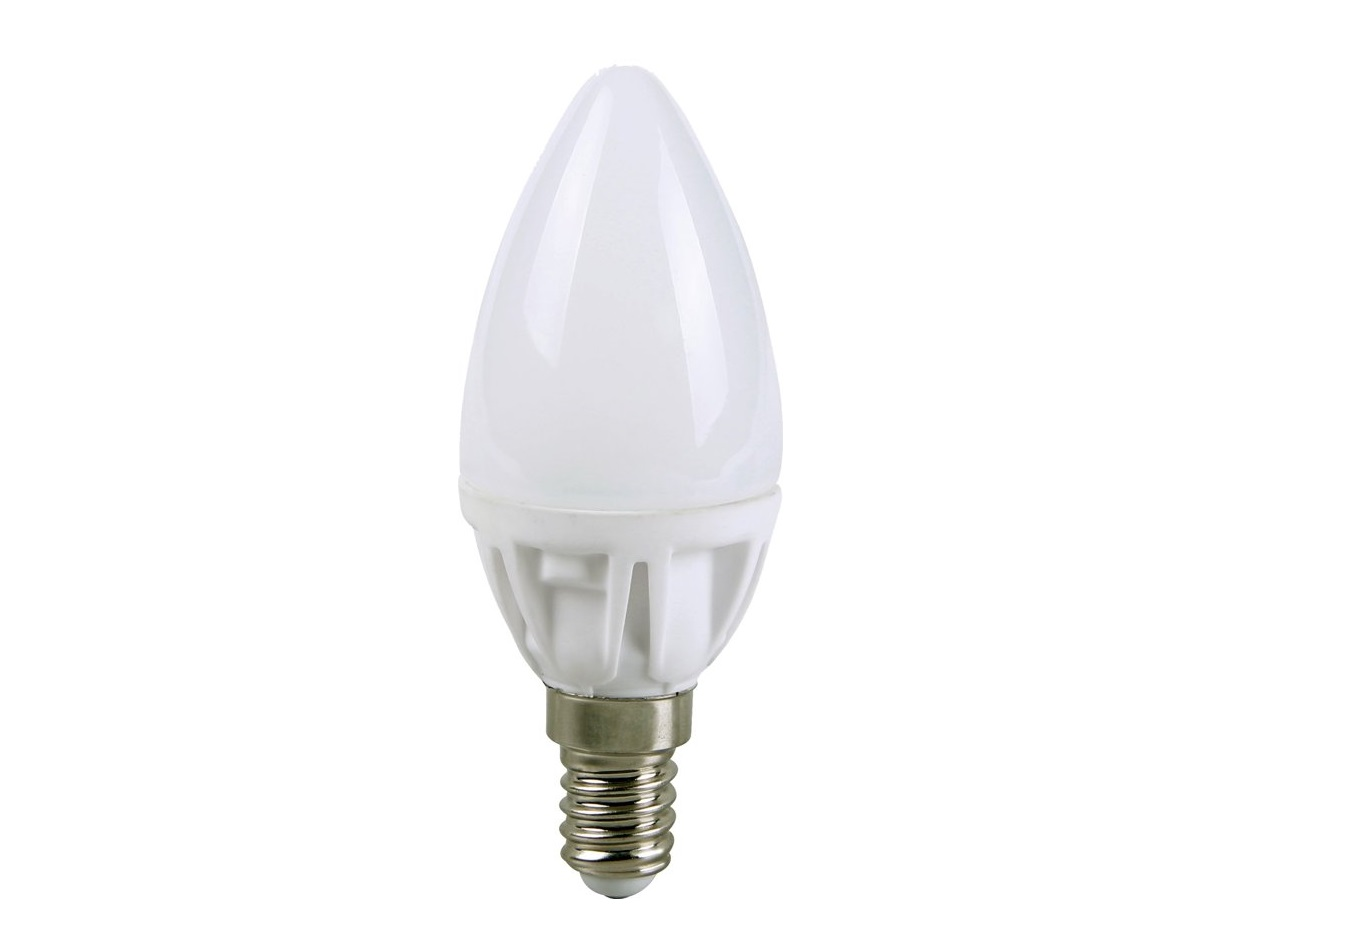 Ledlamp - Candle- 1w - E14